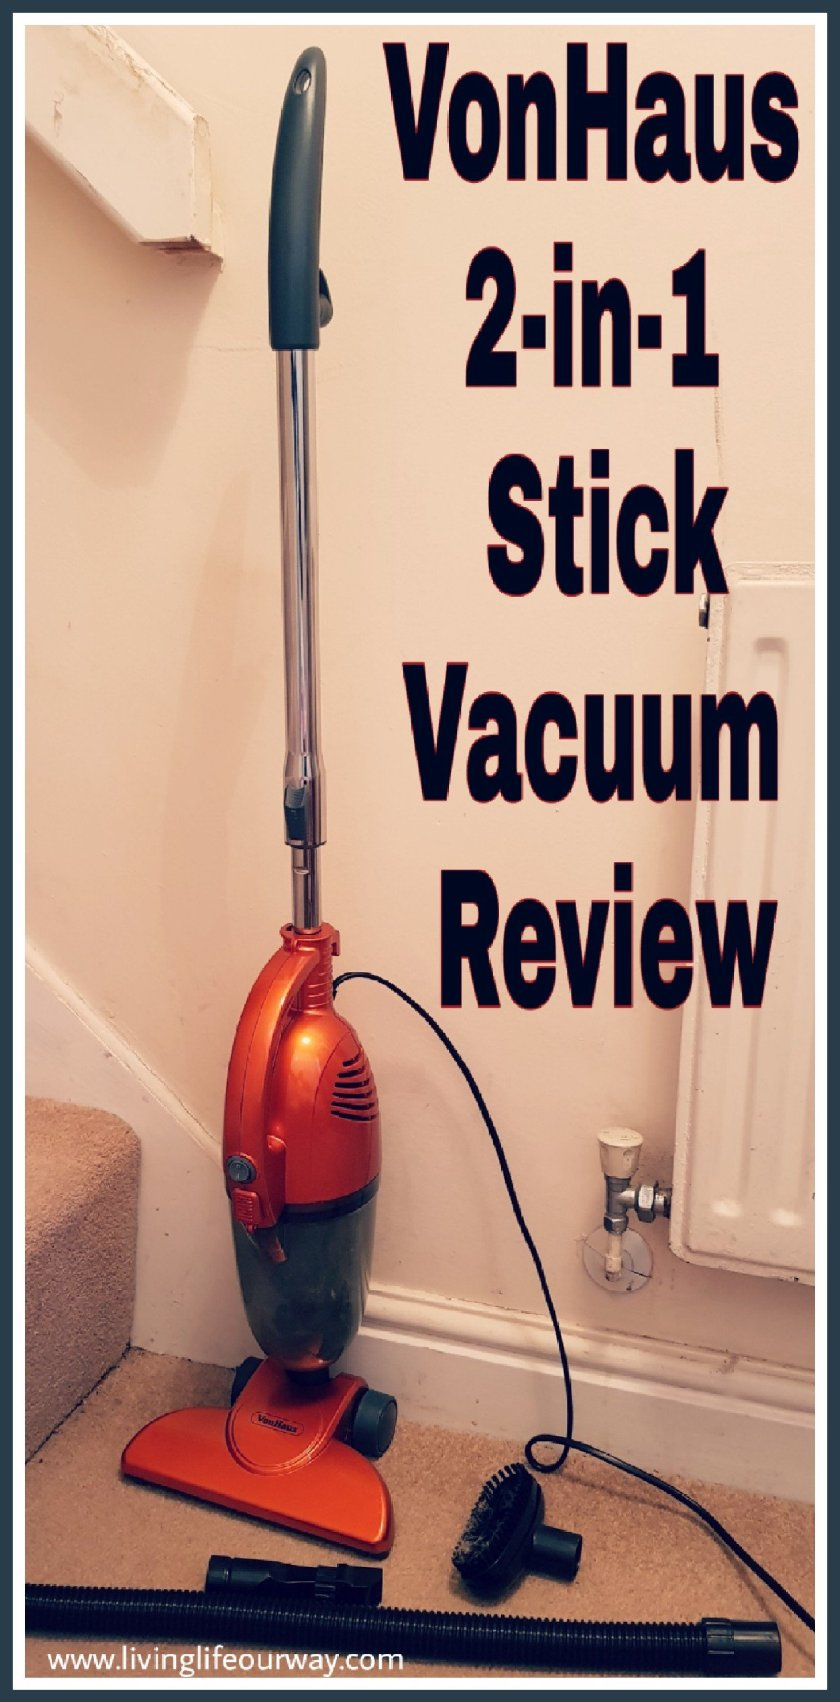 A picture of the vacuum cleaner with title VonHaus 2-in-1 stick vacuum review.